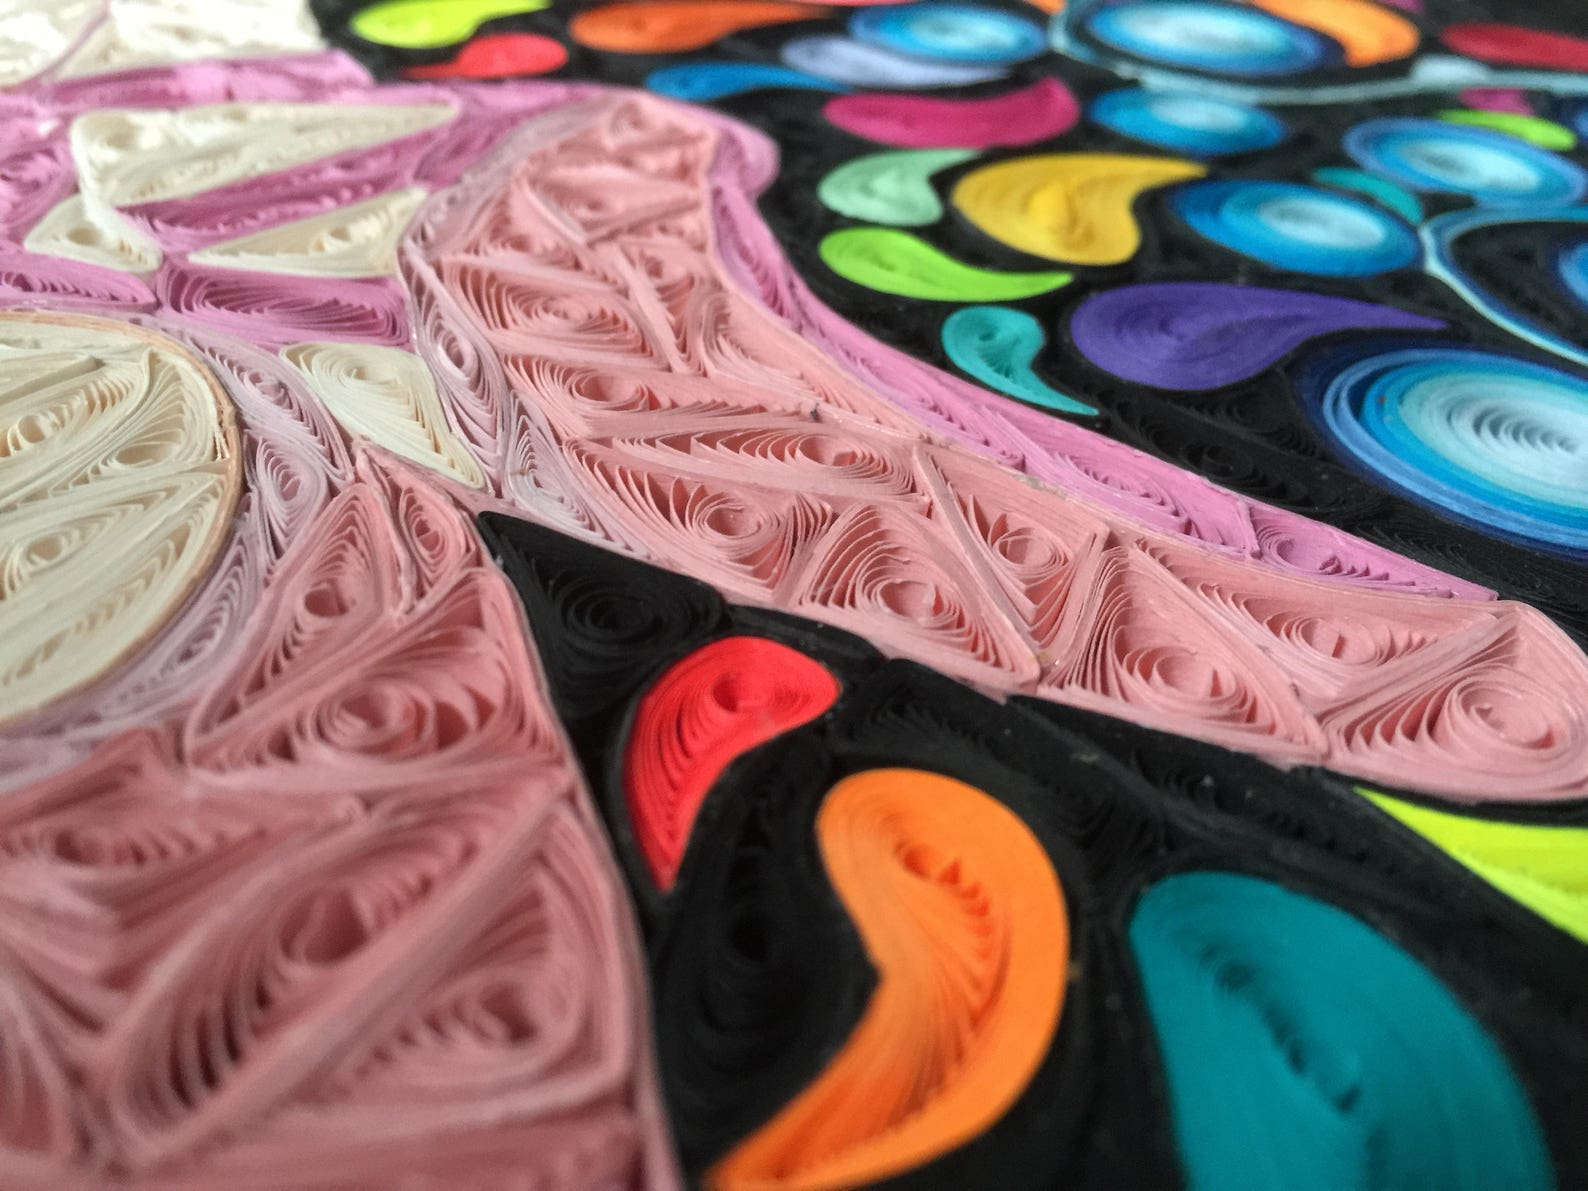 quilling, paper art, on pointe, ballet shoes, dancing feet, slipper, mosaic, digital download, ready to print, 1st anniversary,